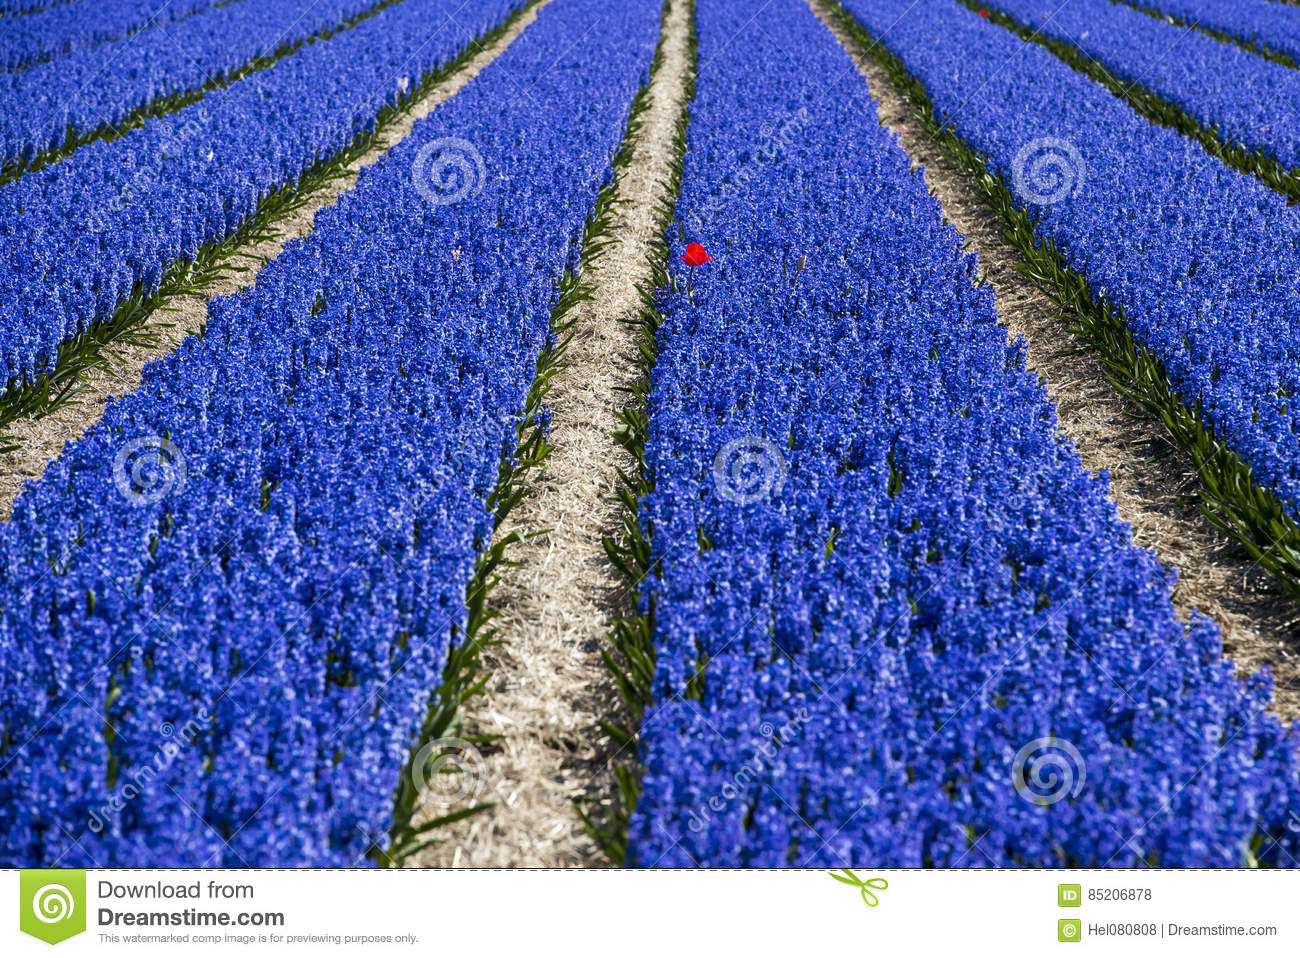 Red tulip in lushly blue hyacinth field